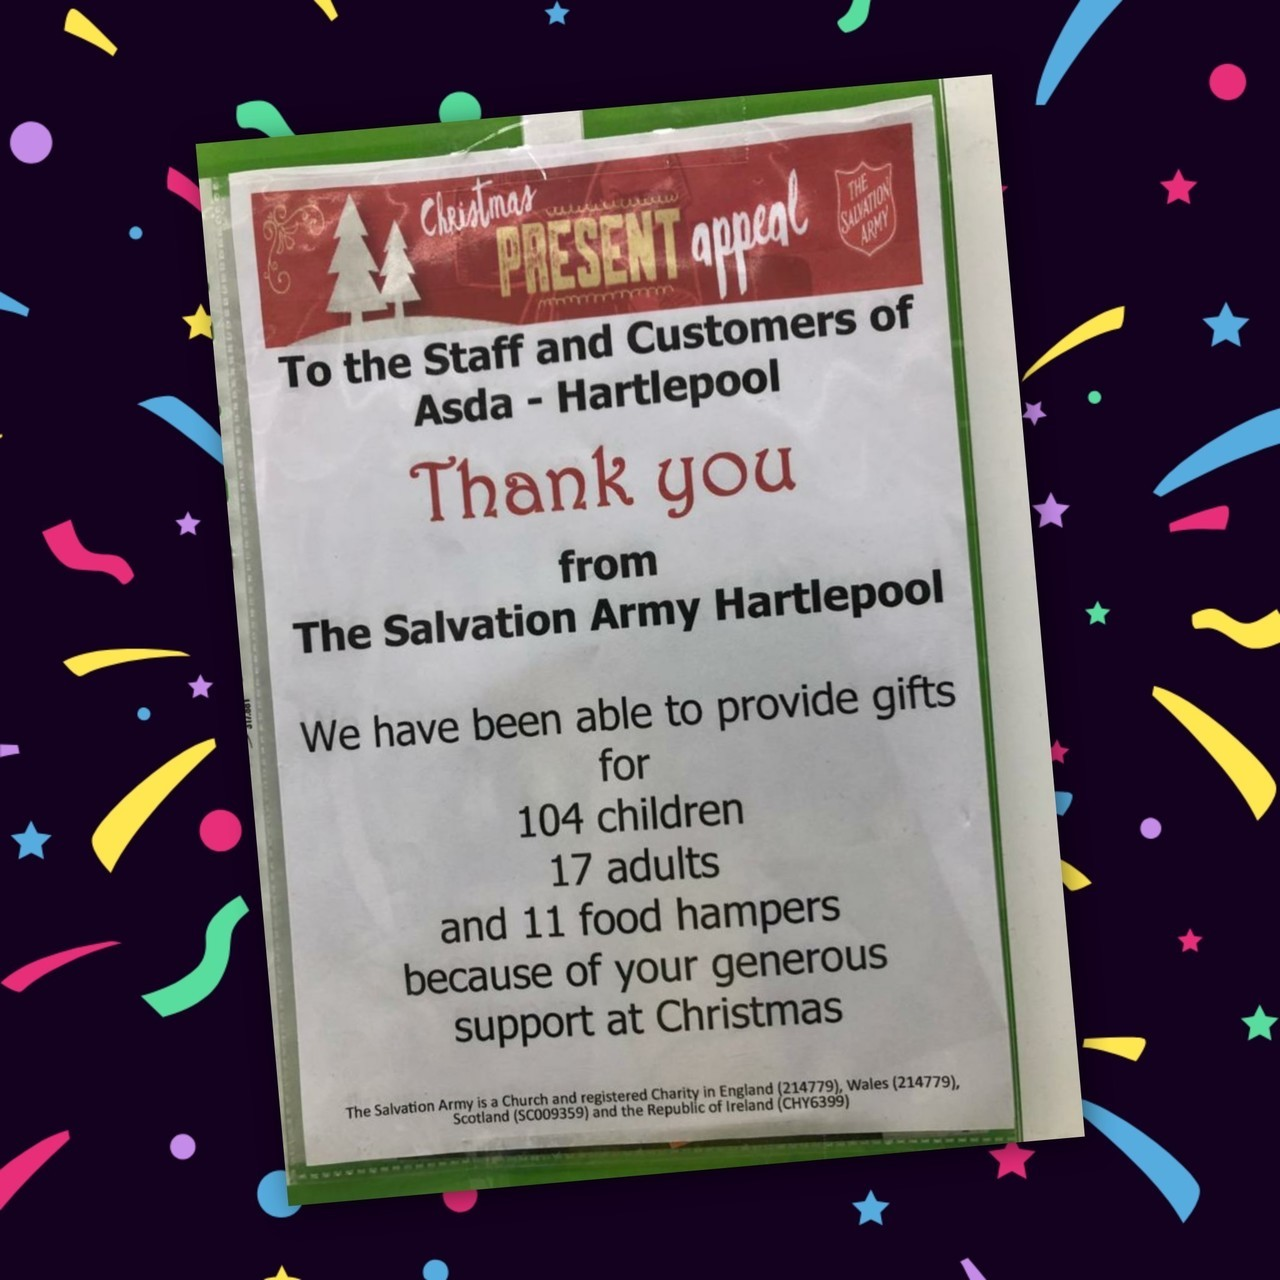 Thank you from Salvation Army | Asda Hartlepool